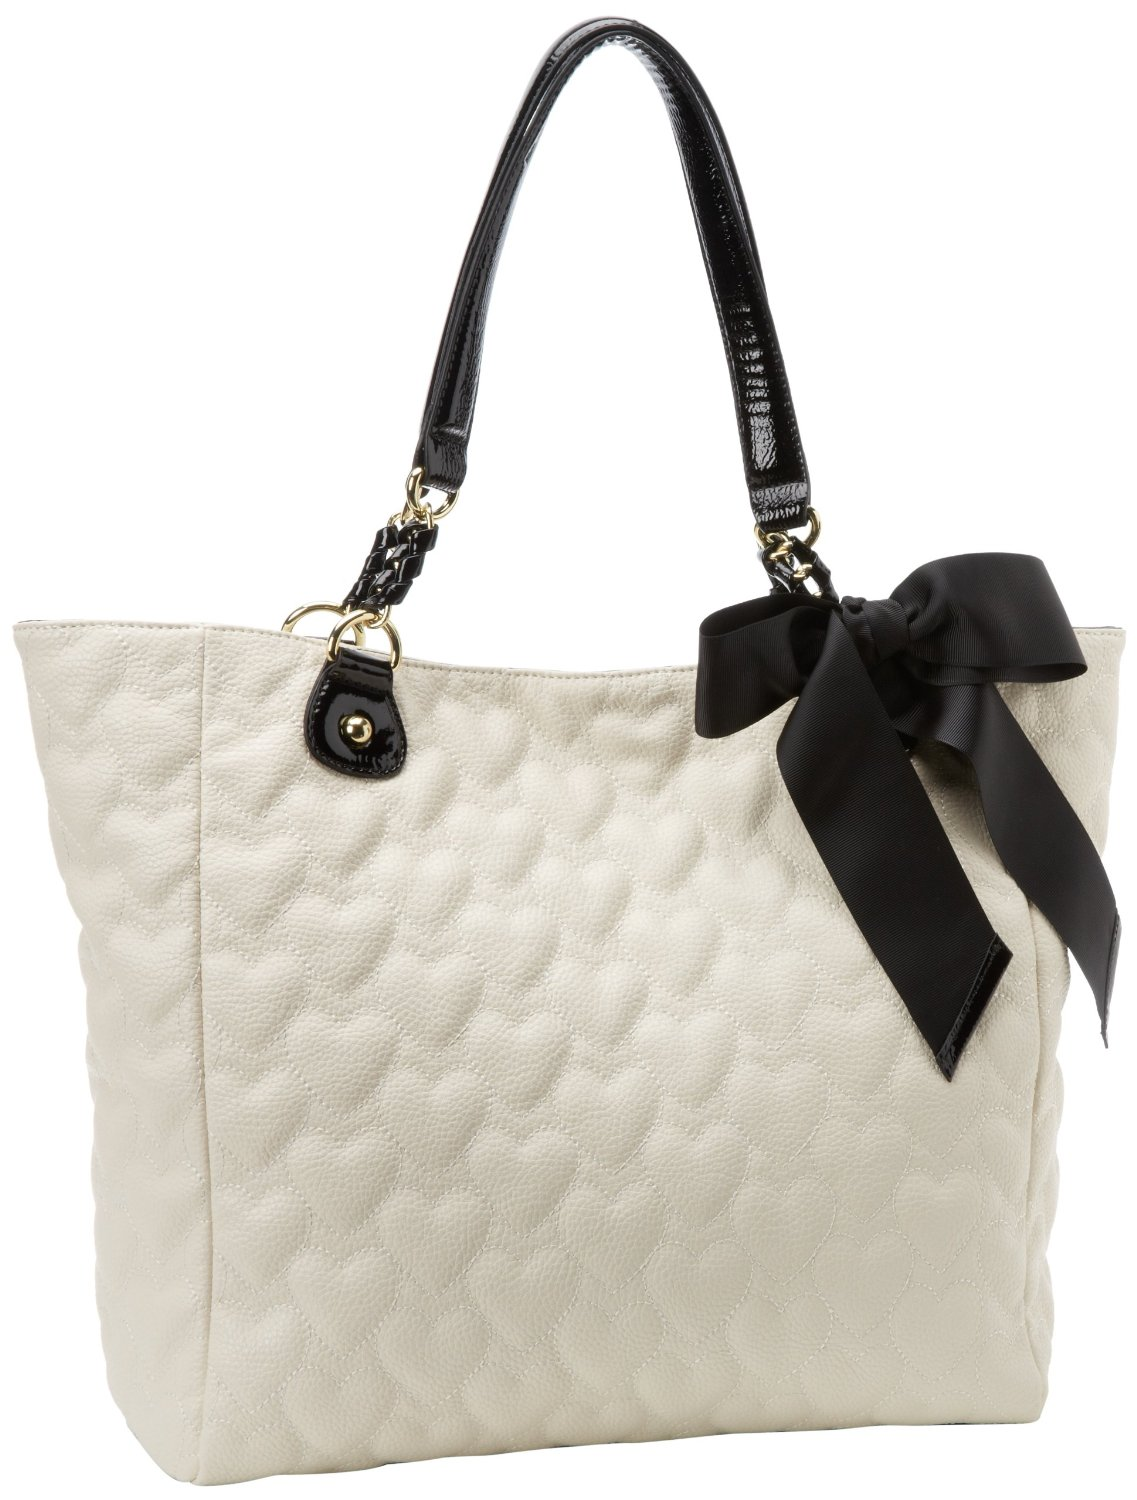 Betsey Johnson Handbags Deals On 1001 Blocks